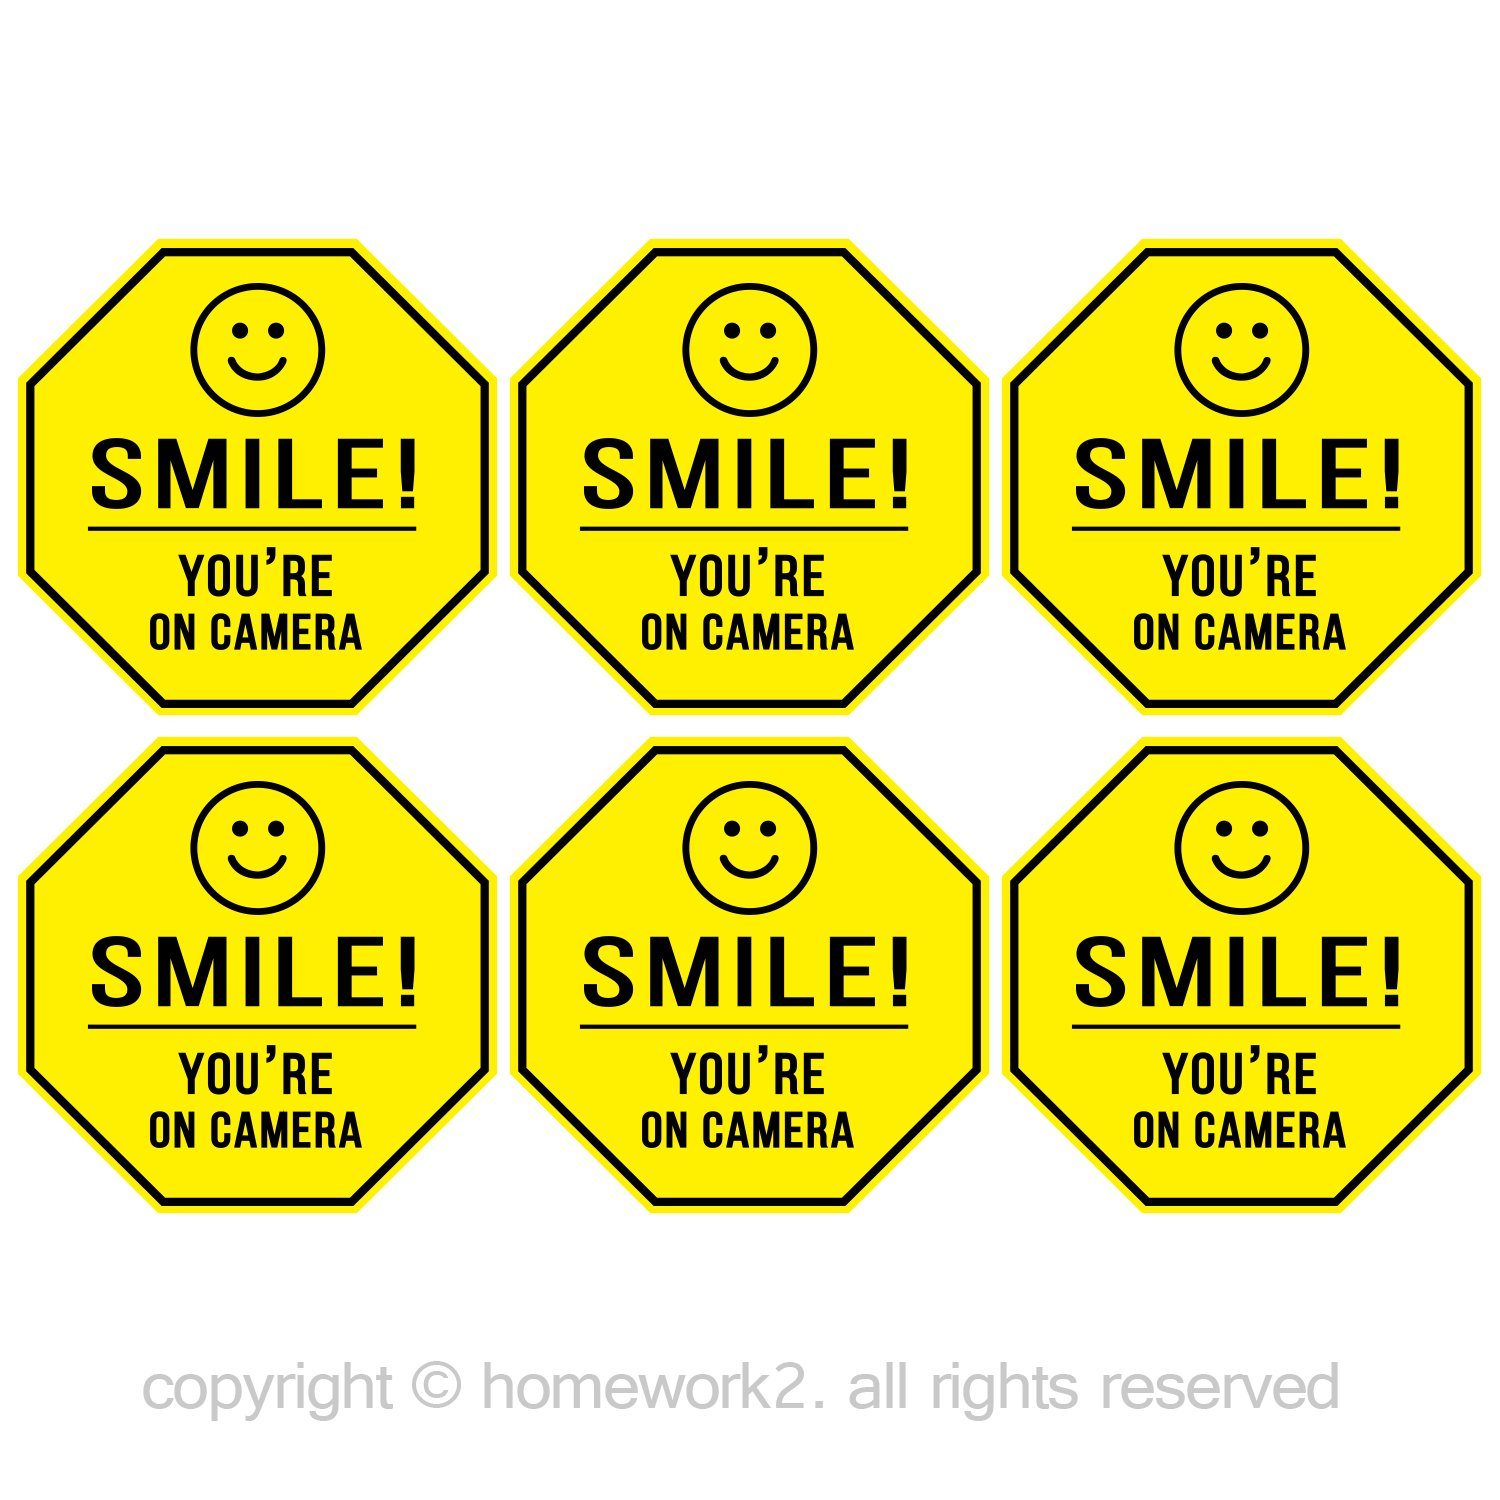 Smile You're On Camera Stickers, Yellow Octagon-Shaped, 84mm X 84mm Vinyl Decals - Indoor & Outdoor Use, UV Protected & Waterproof - 6 Labels Homework2